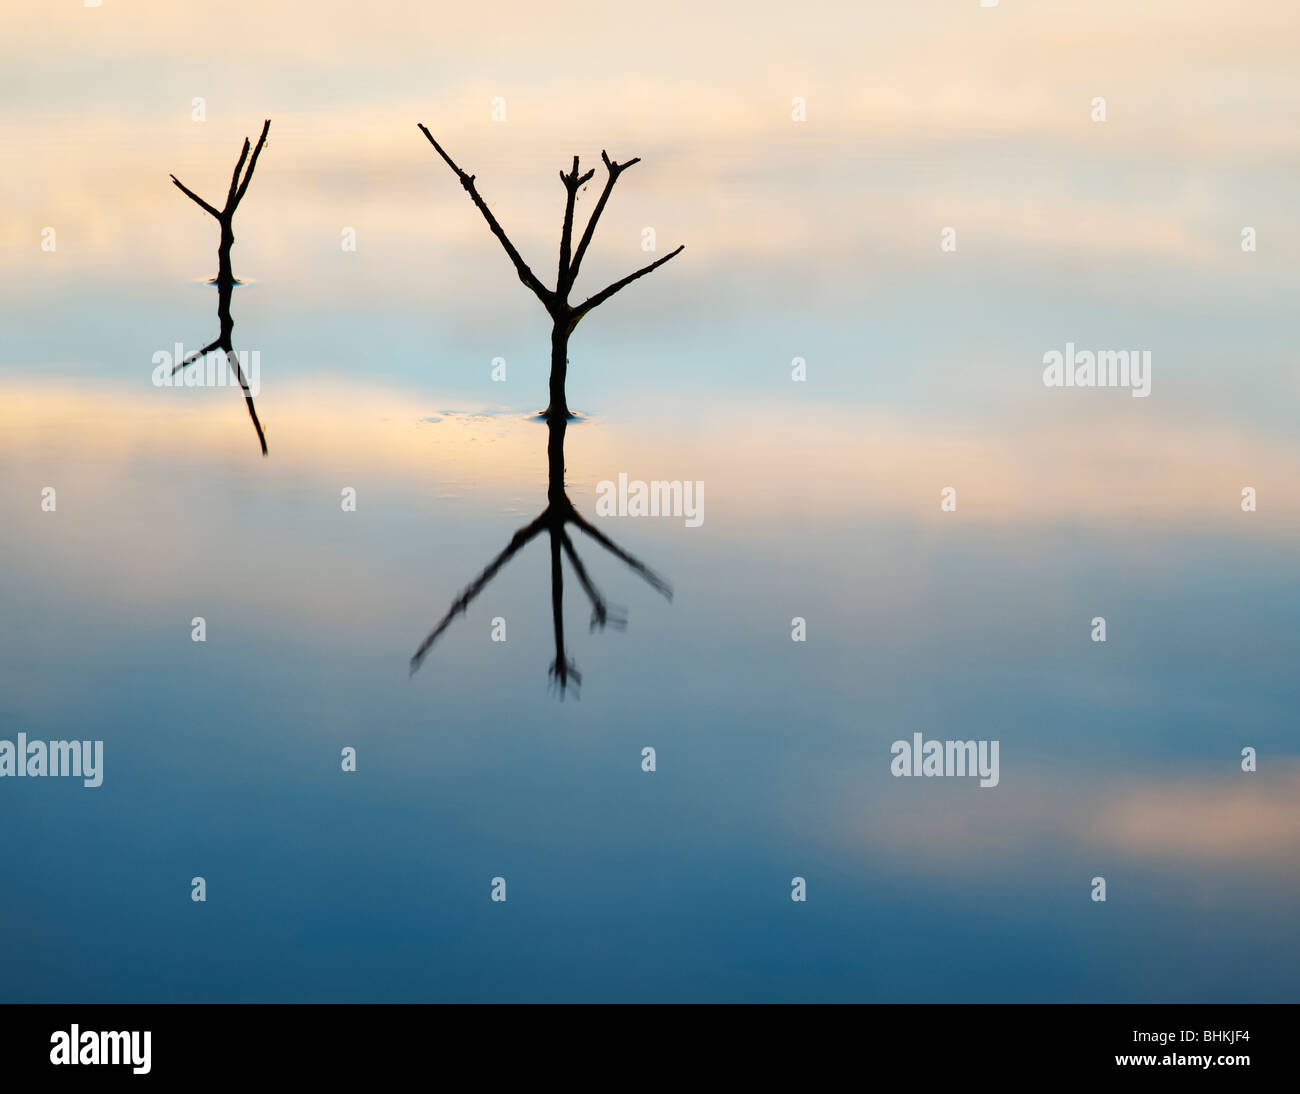 Sticks reflecting in a still pool at dawn in india - Stock Image